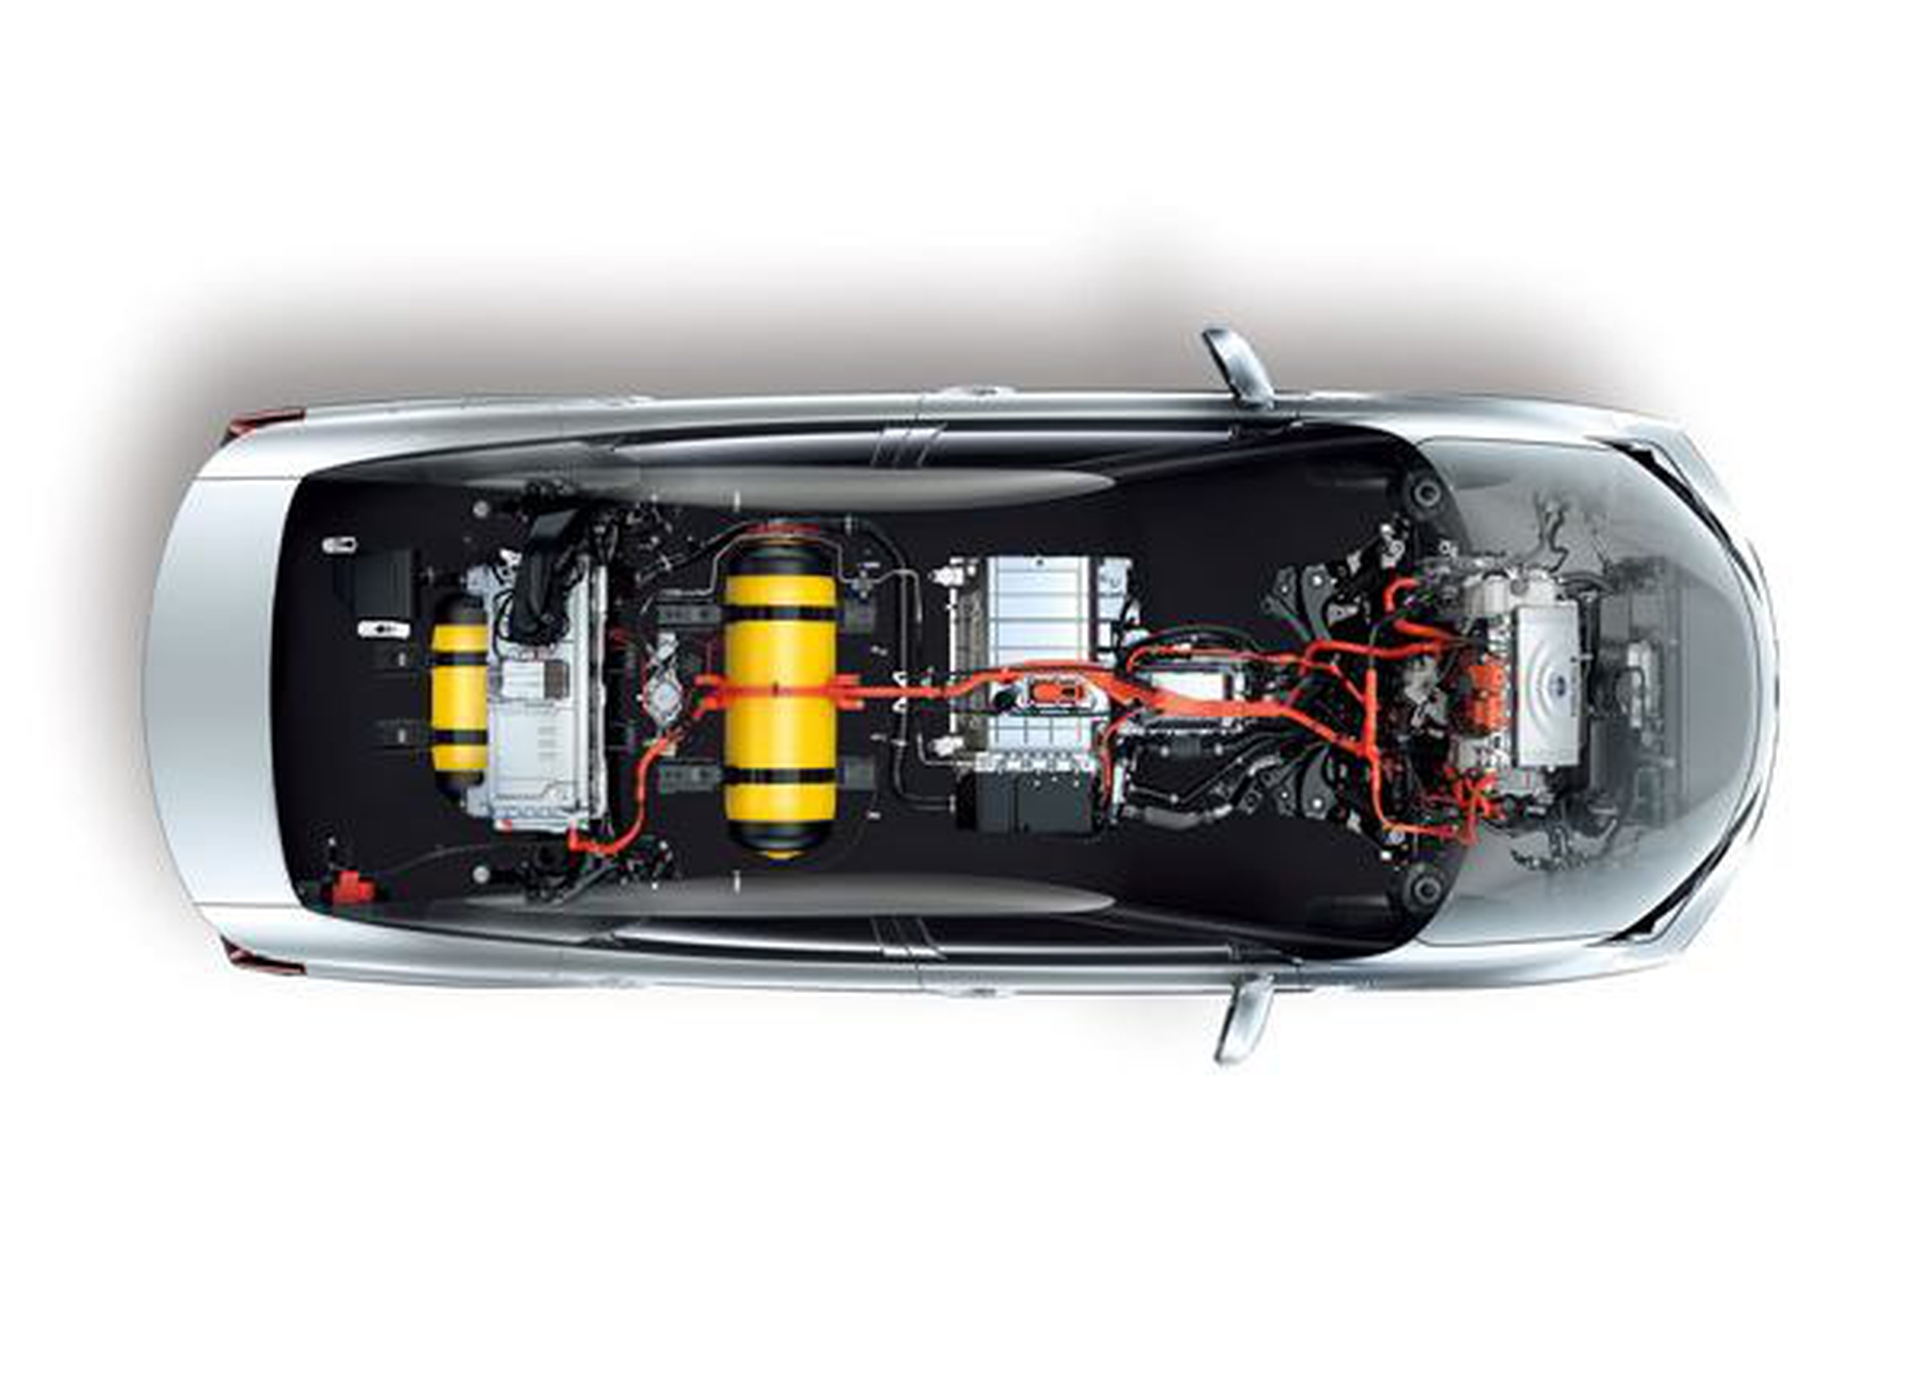 Essential Components of Your Car